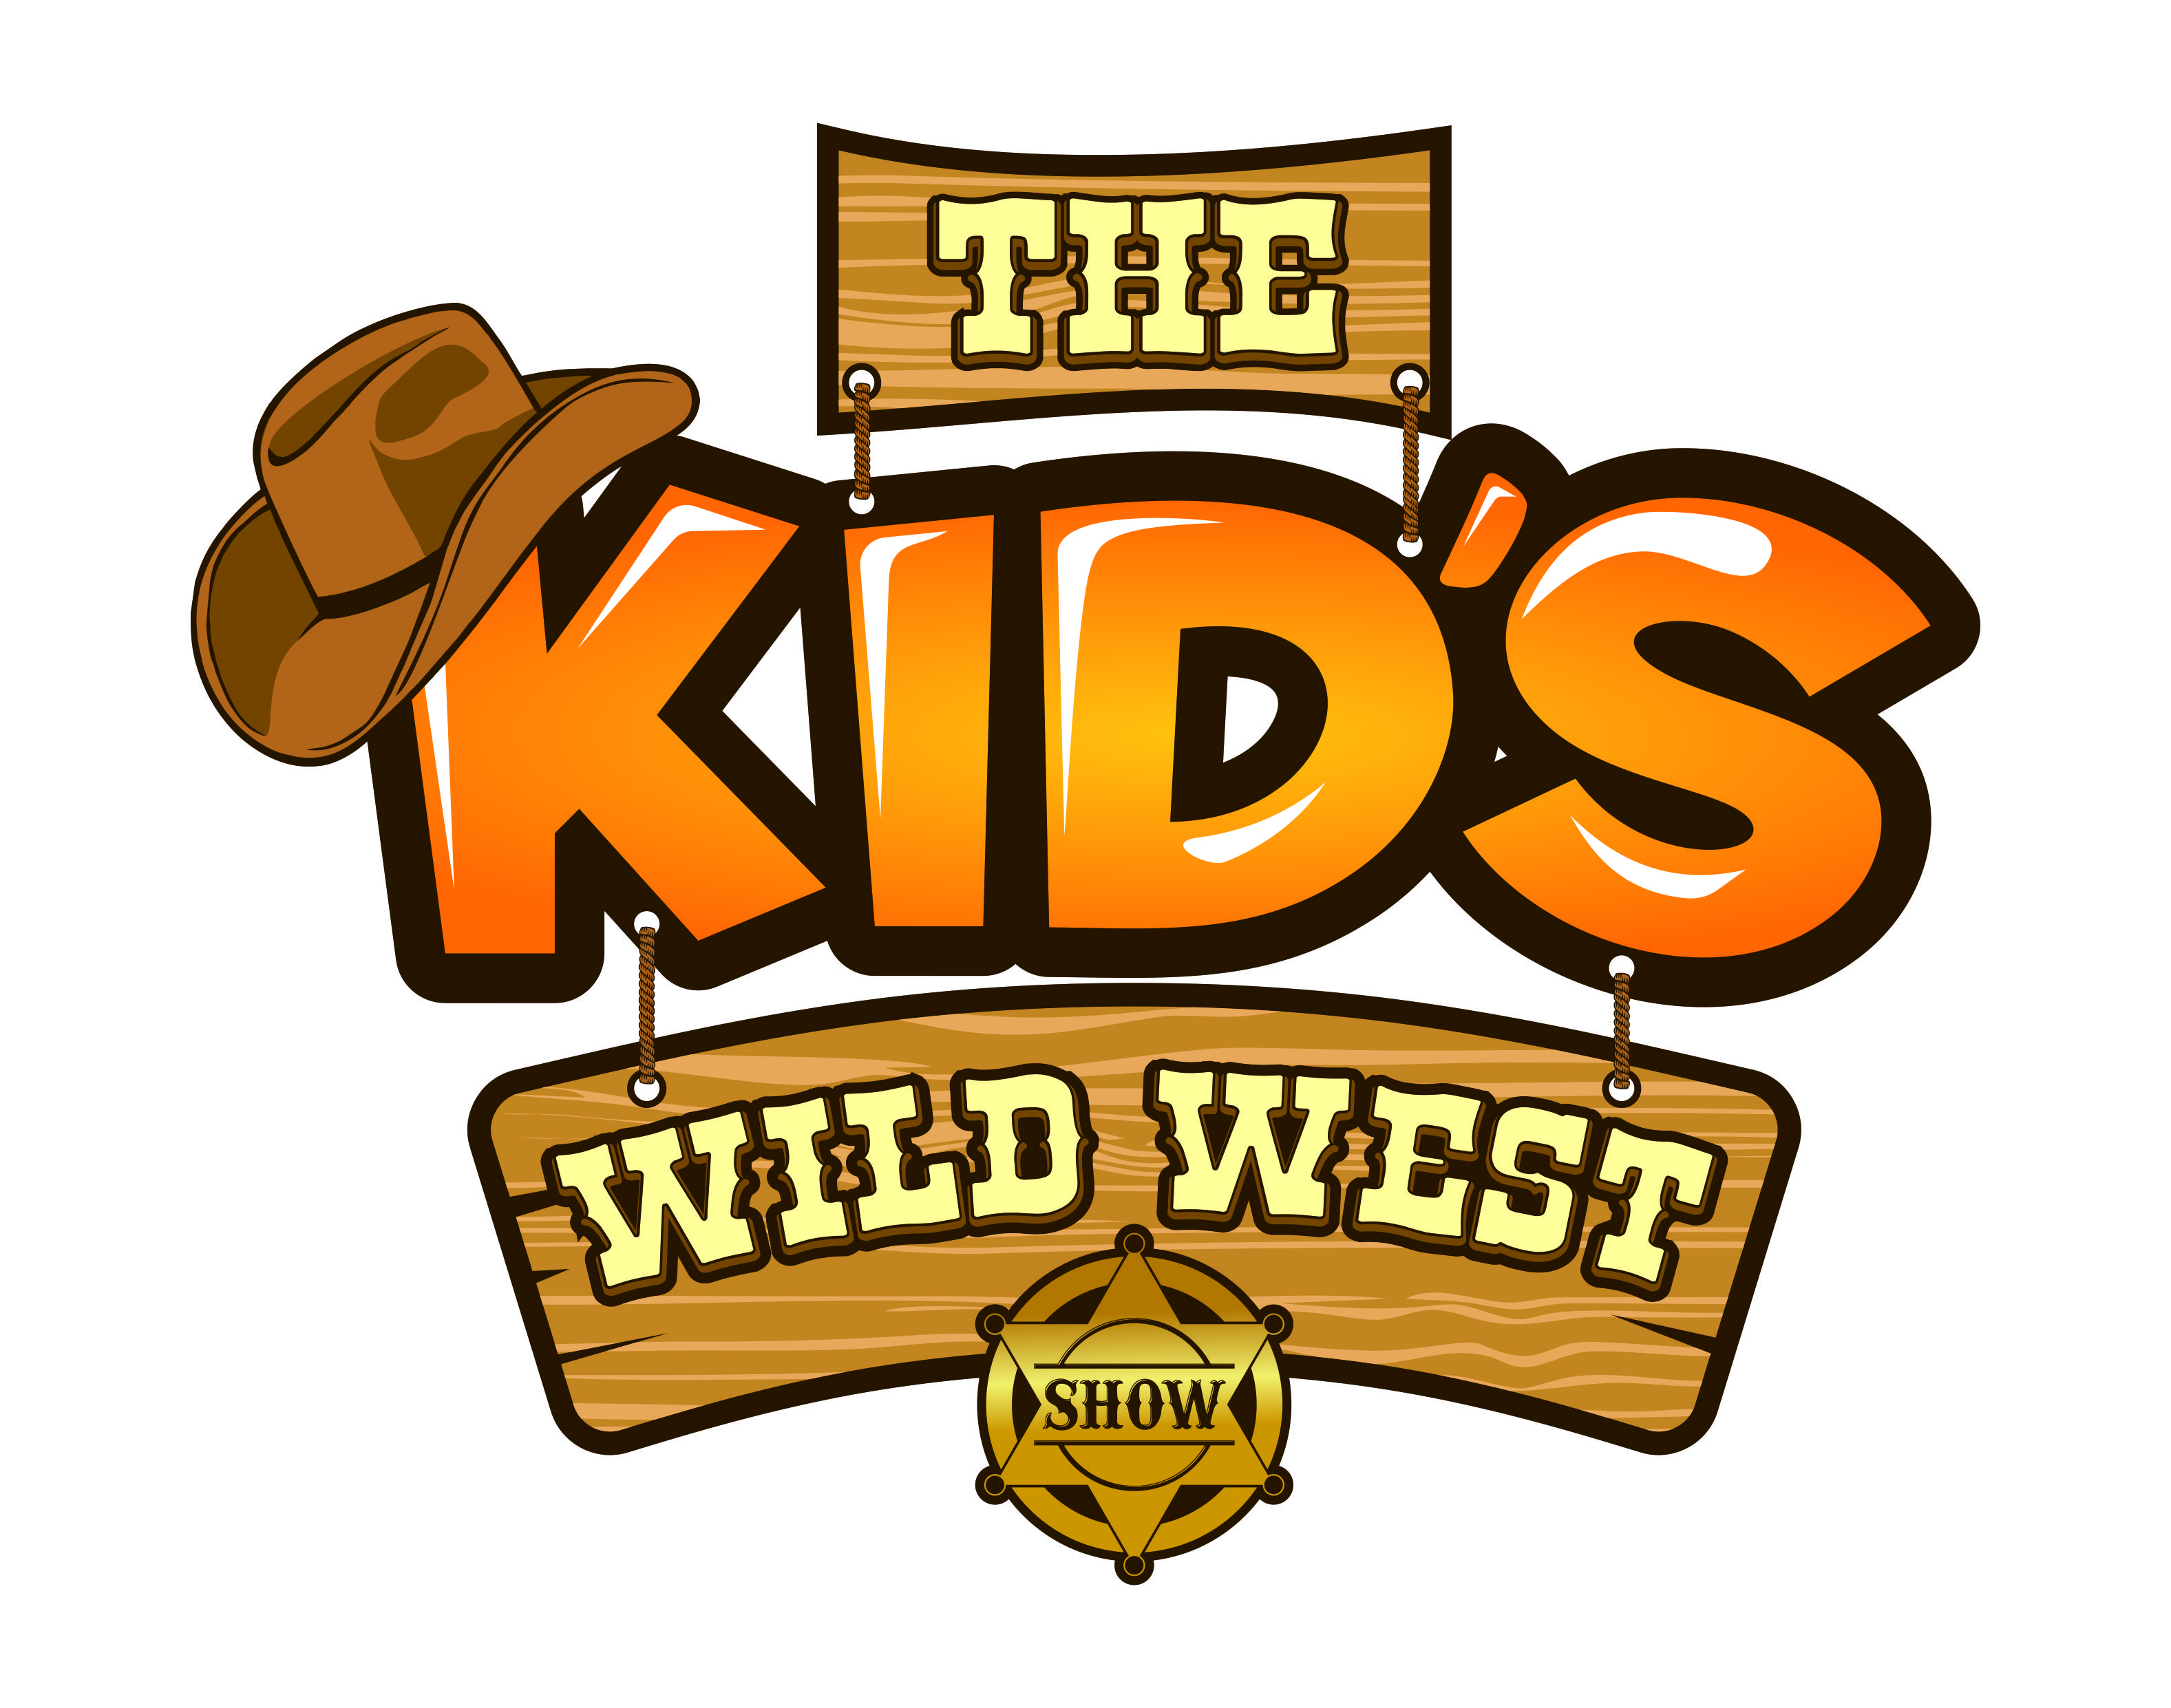 The Kid's Wild West Show